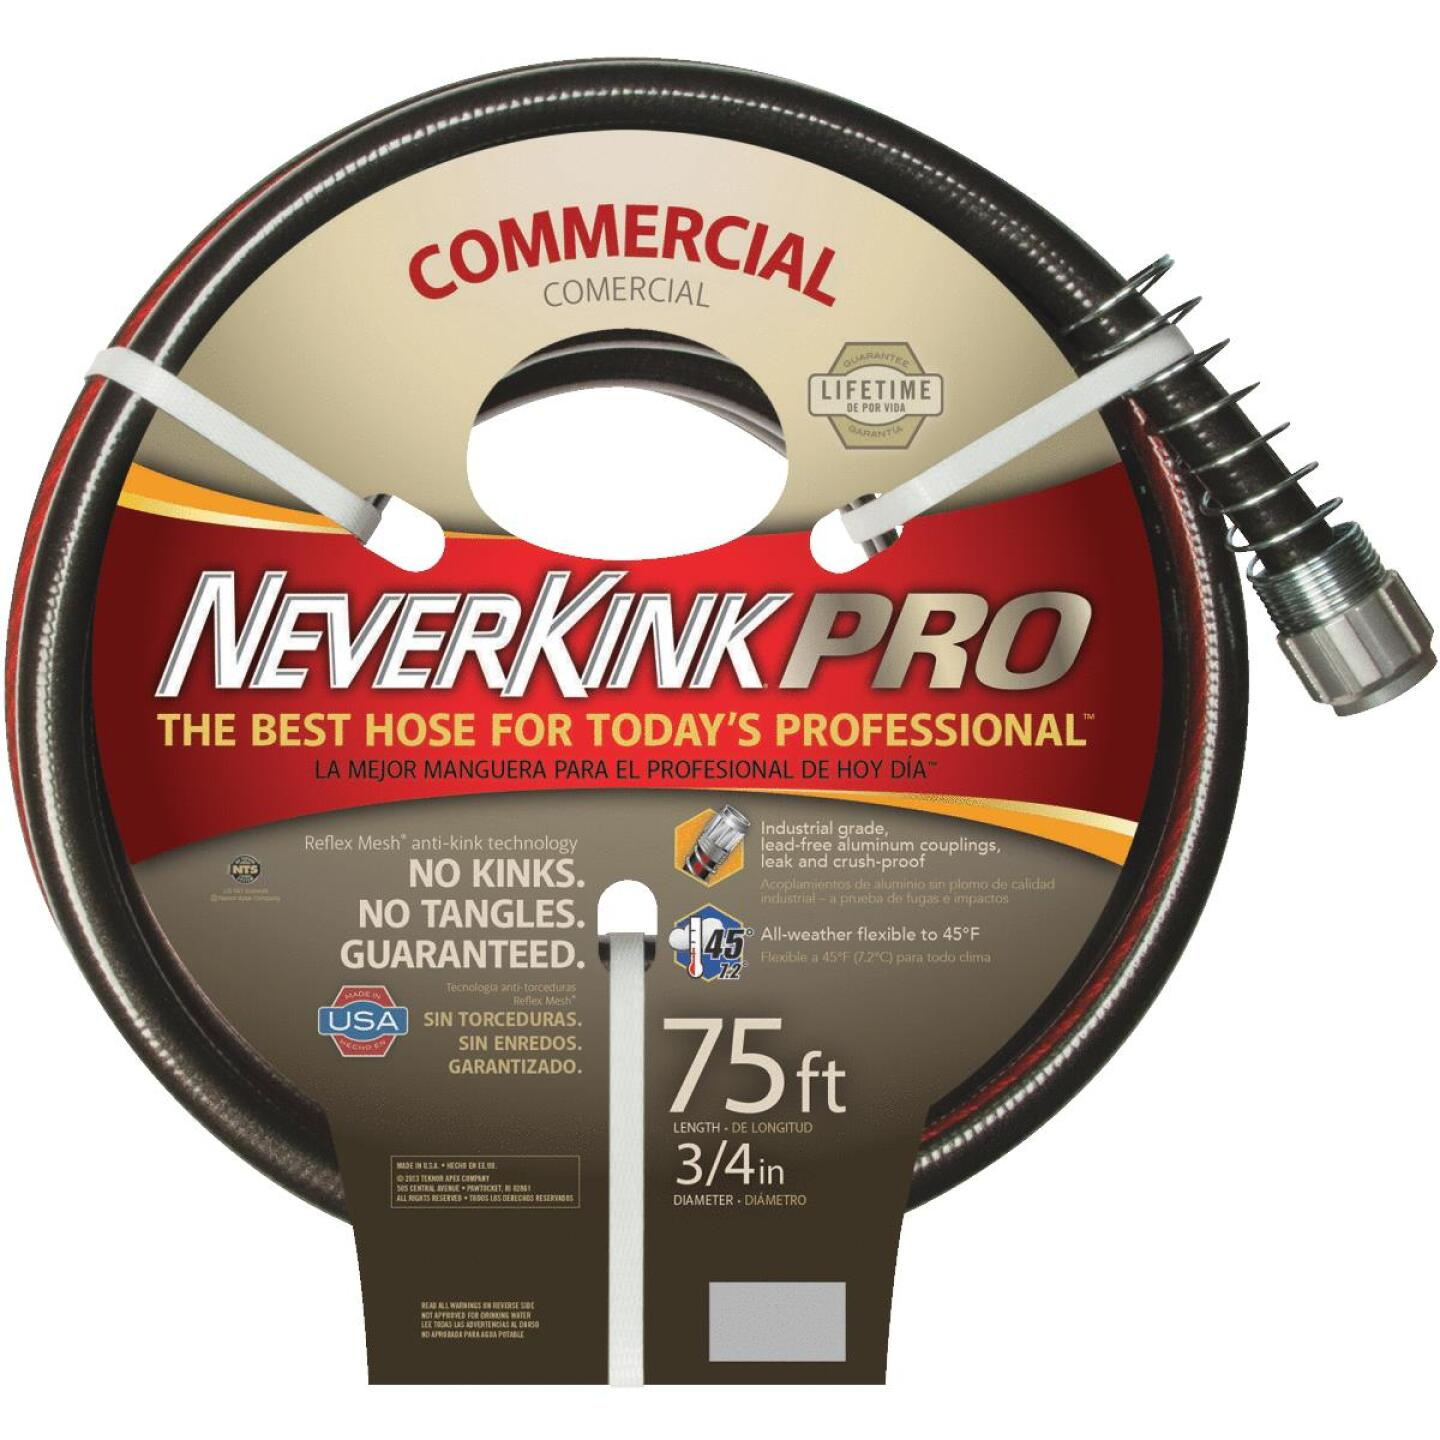 Neverkink Pro 3/4 In. Dia. x 75 Ft. L. Commercial Garden Hose Image 1